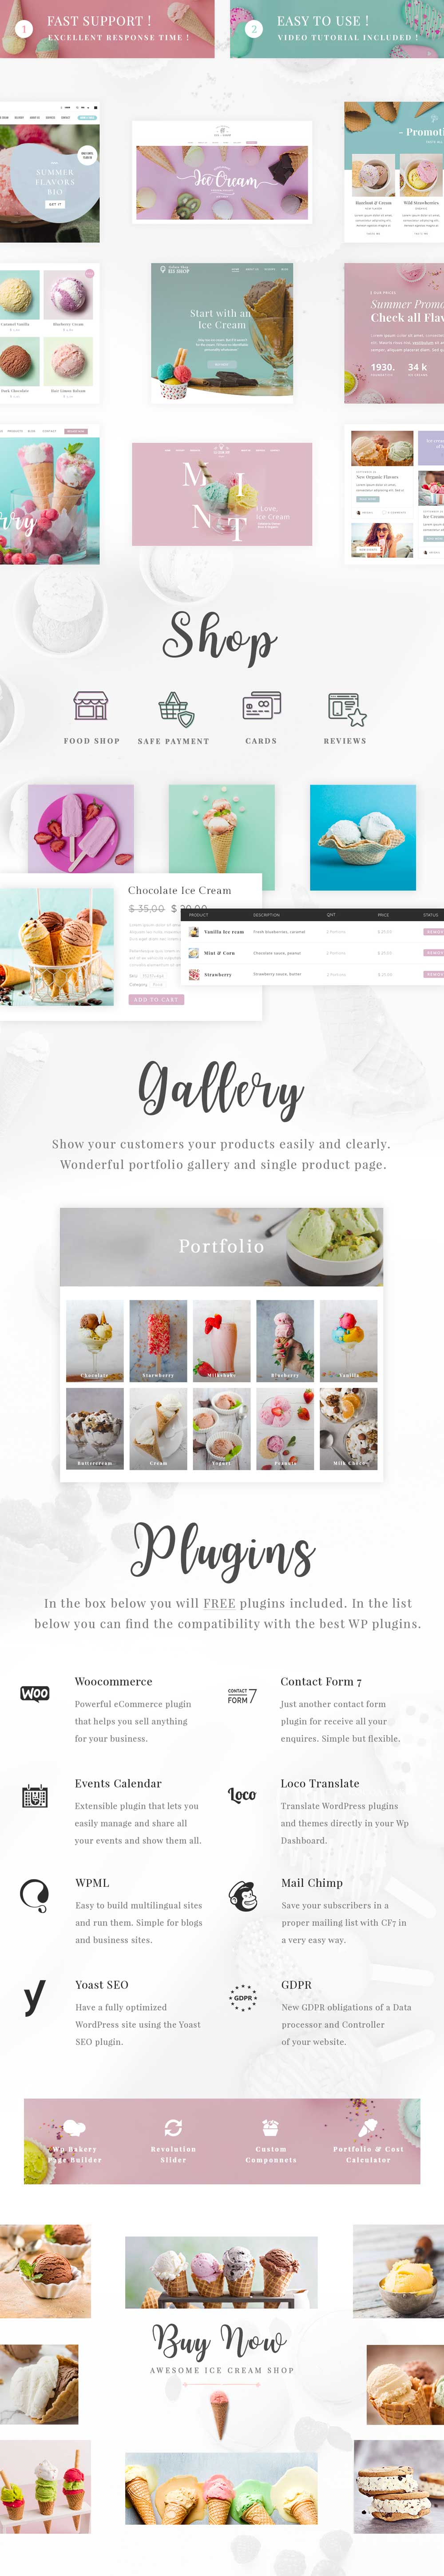 Eis - Ice Cream Shop WordPress Theme - 1